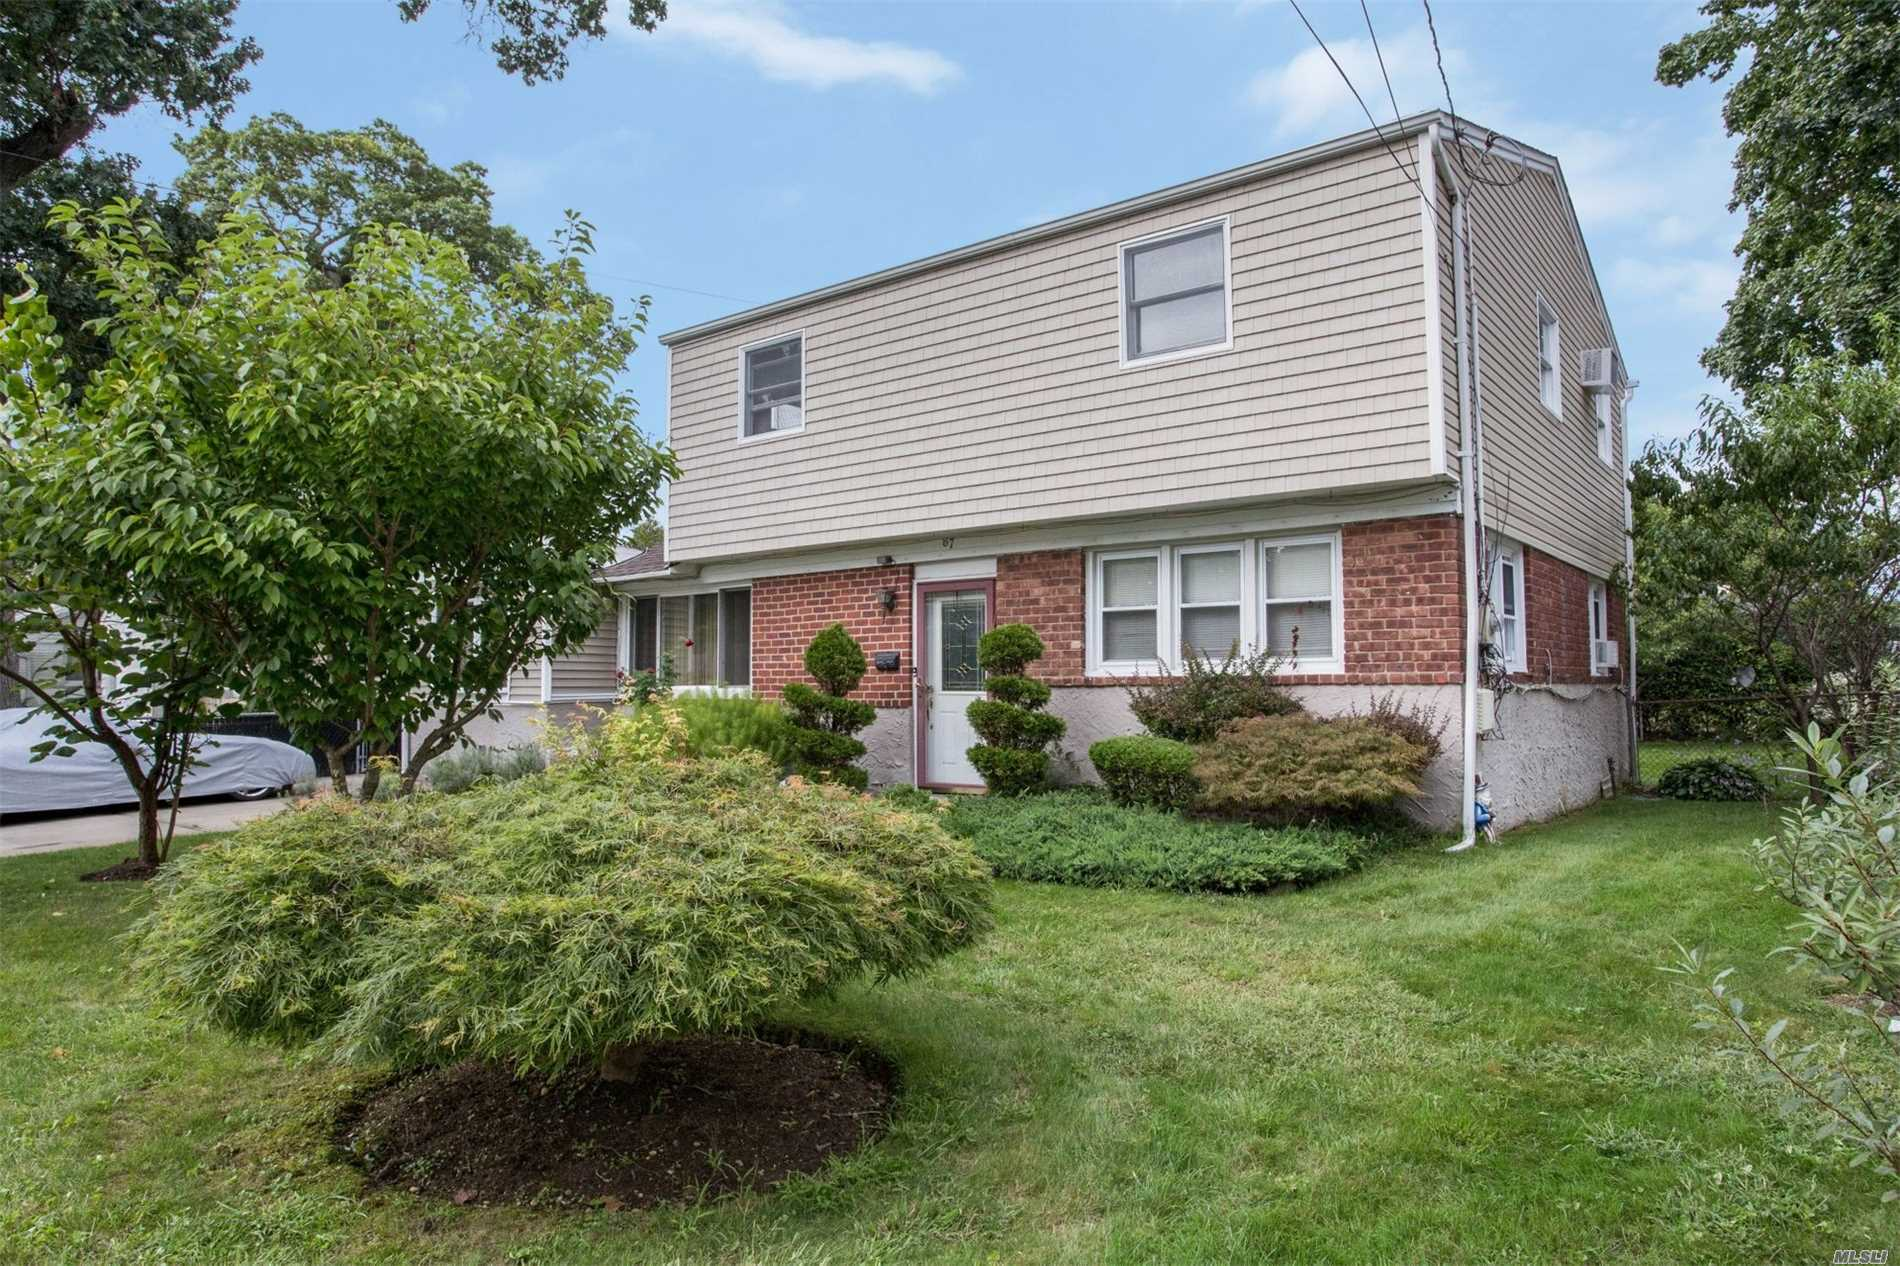 87 Baltimore Ave - Massapequa, New York